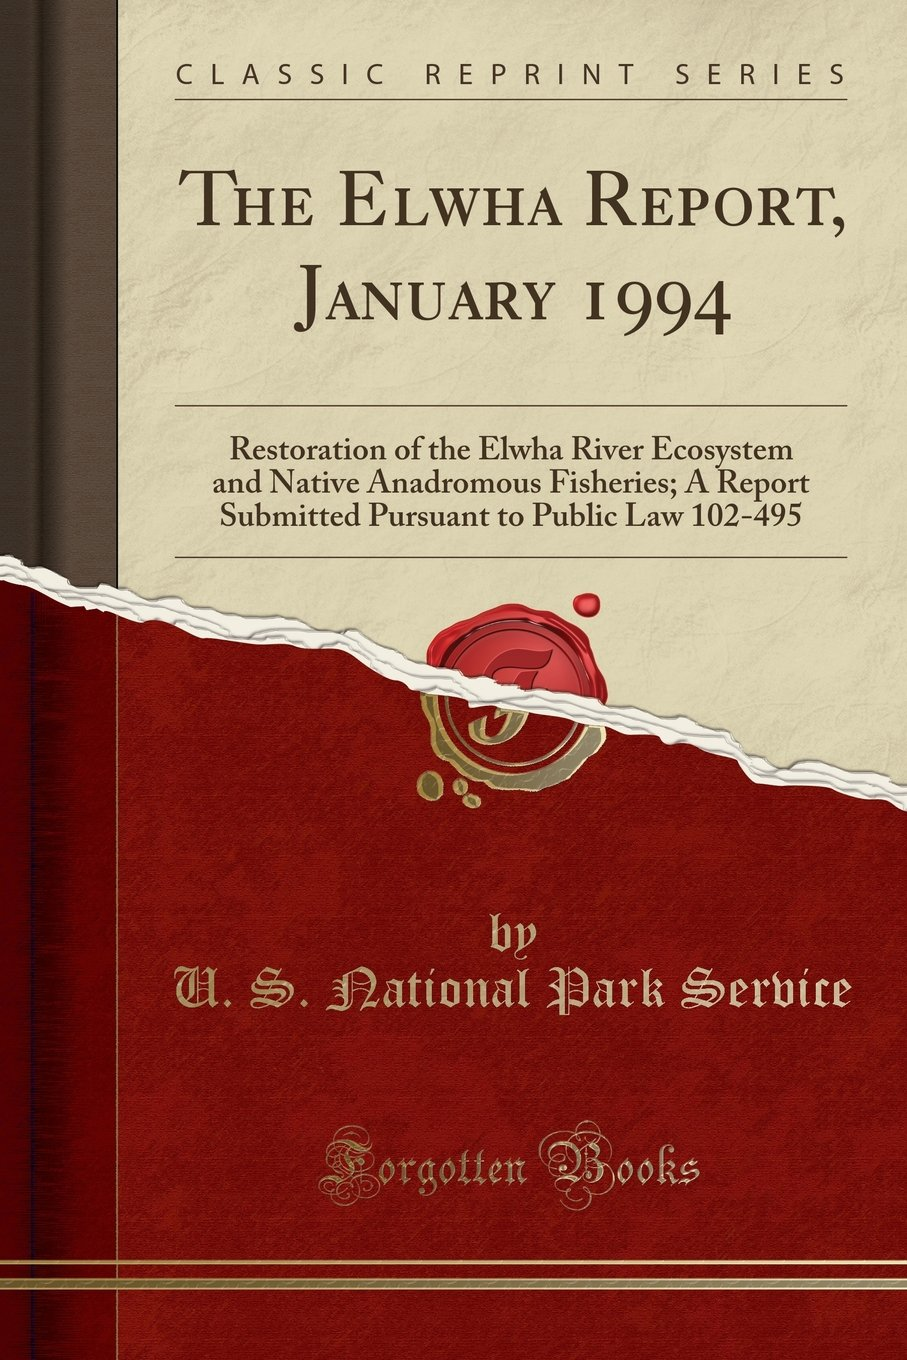 The Elwha Report, January 1994: Restoration of the Elwha River Ecosystem and Native Anadromous Fisheries; A Report Submitted Pursuant to Public Law 102-495 (Classic Reprint) pdf epub